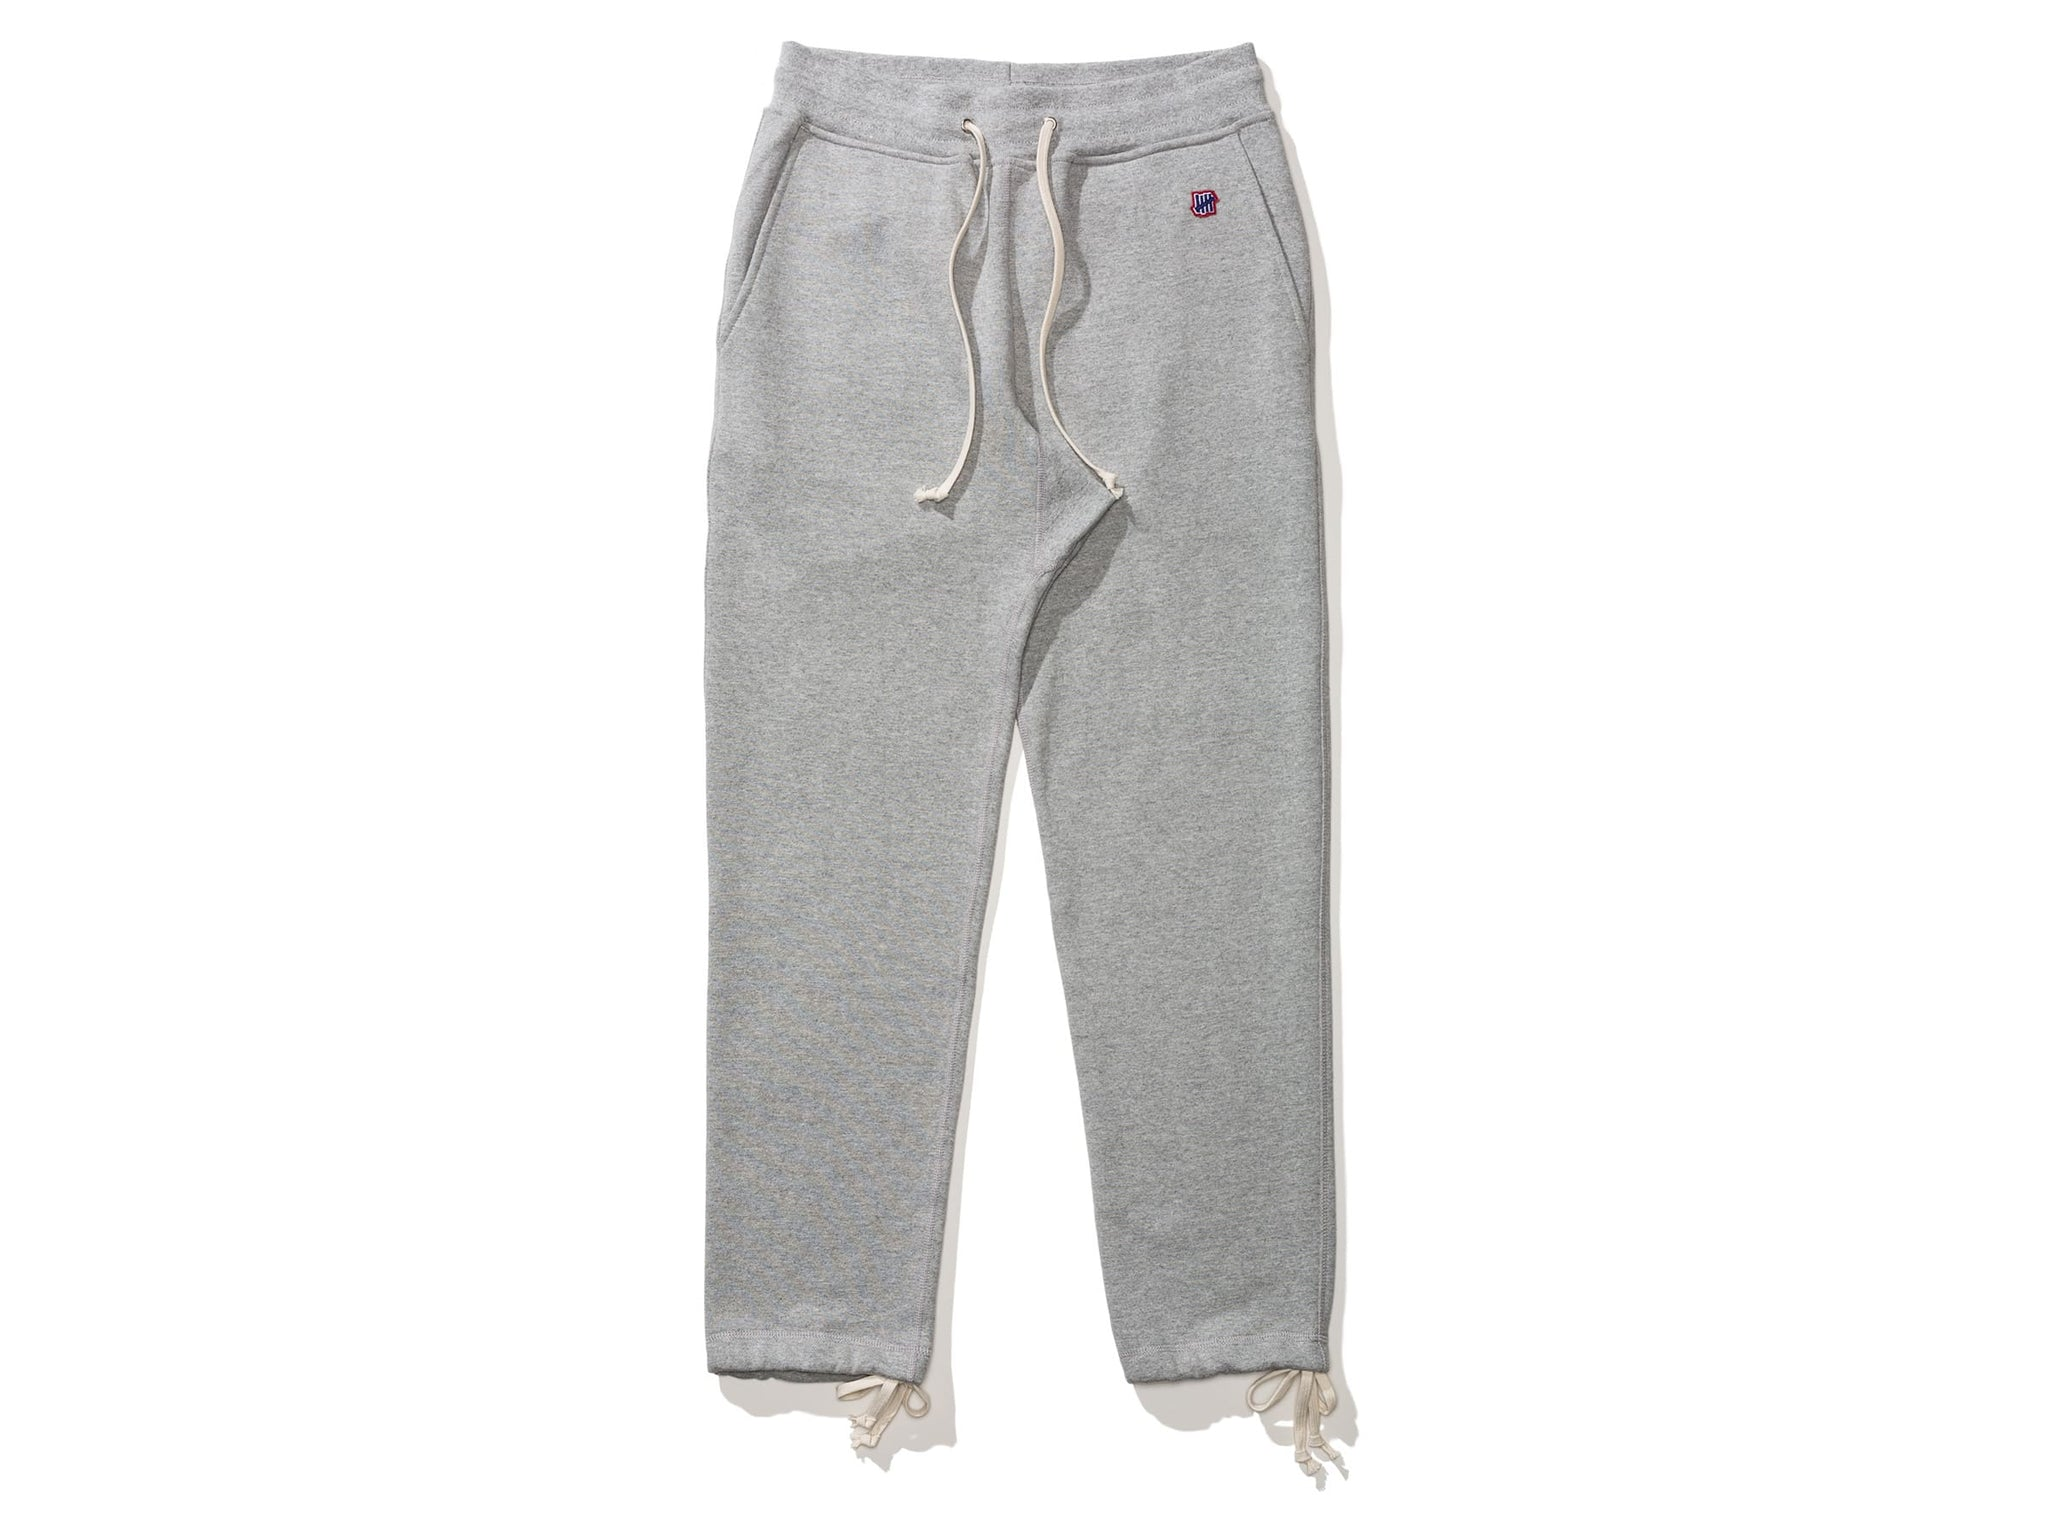 UNDEFEATED HEATHERED FLEECE PANT